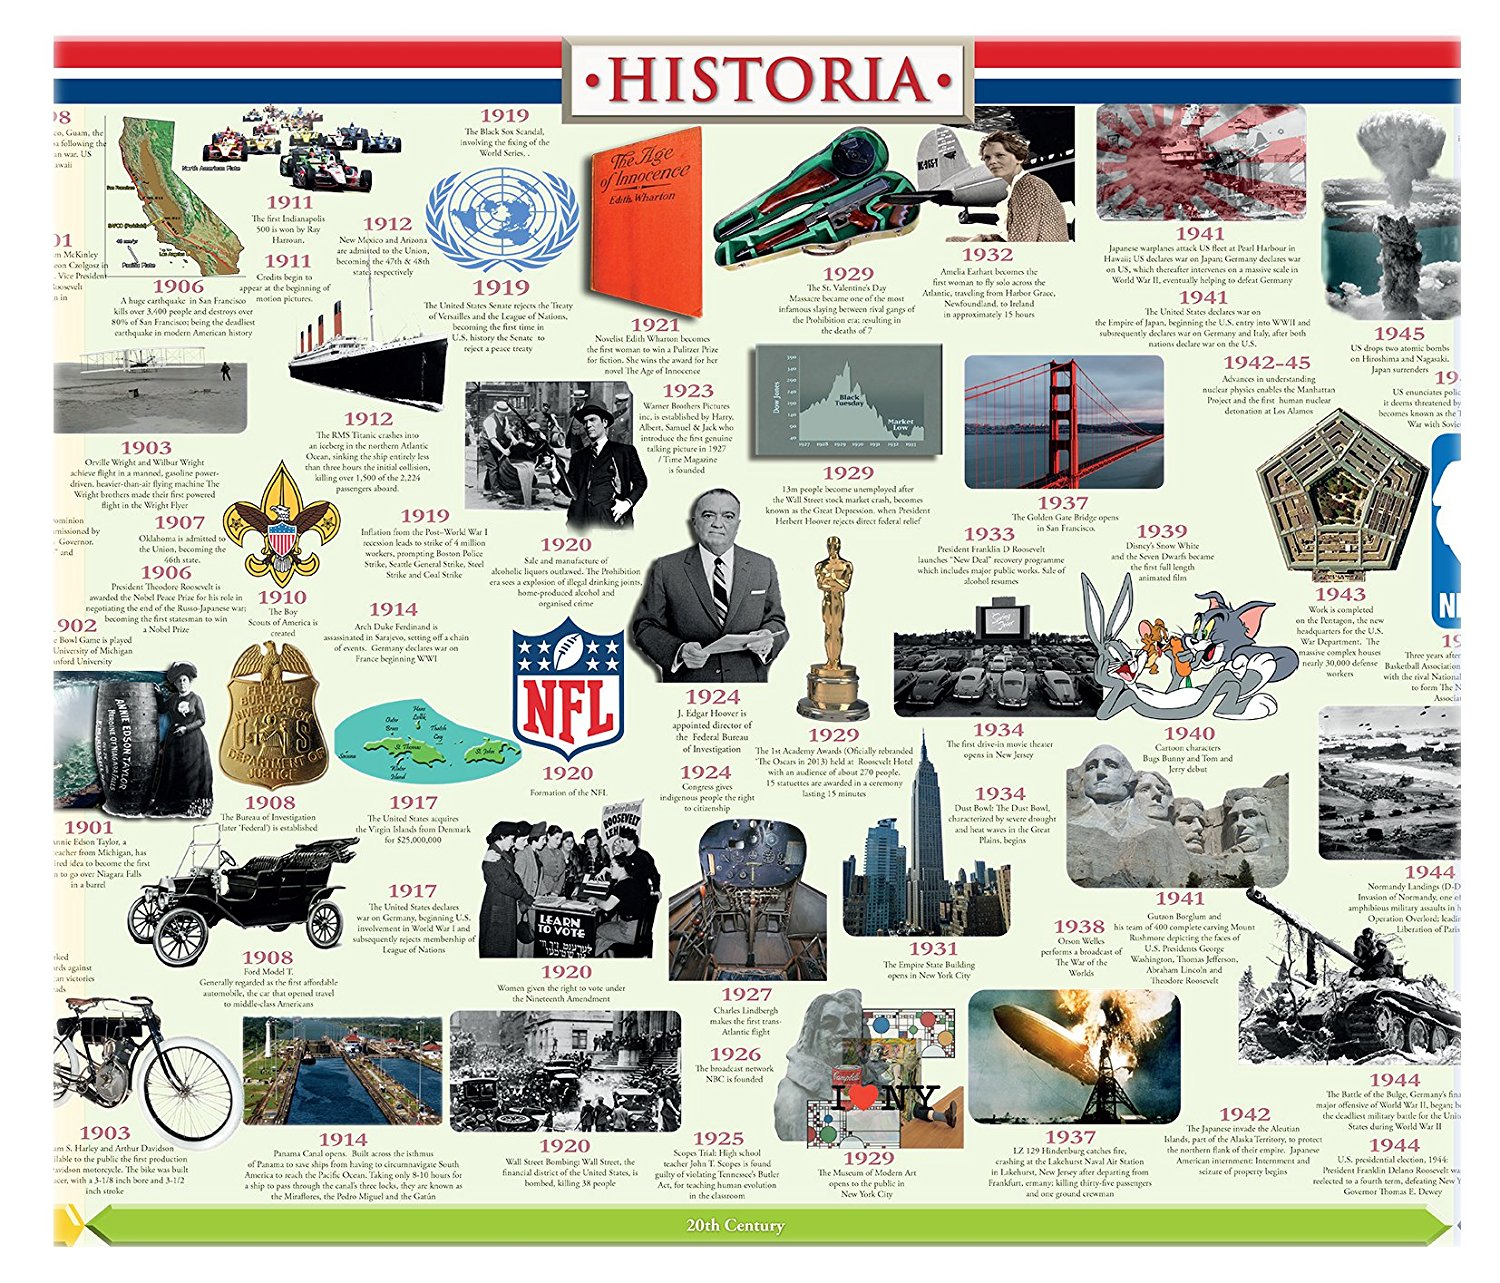 an introduction to the history of the 1800s in the united states 1933 also saw the introduction of it uses material from the wikipedia article history of baseball in the united states history baseball in the united states.